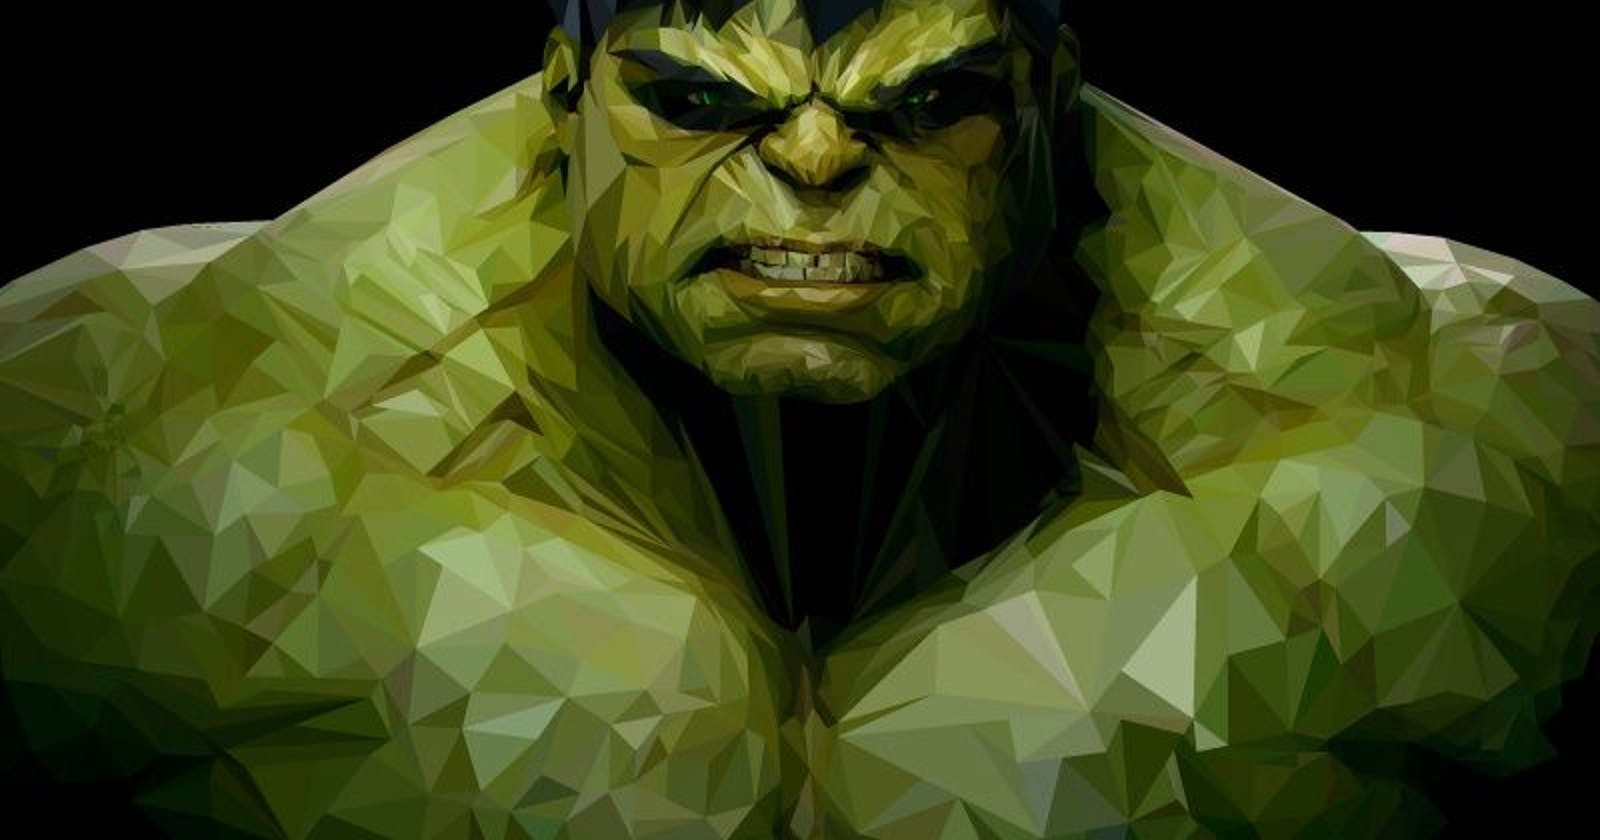 The Hulk Was My Best Friend As A Kid: Advice on Answering Security Questions